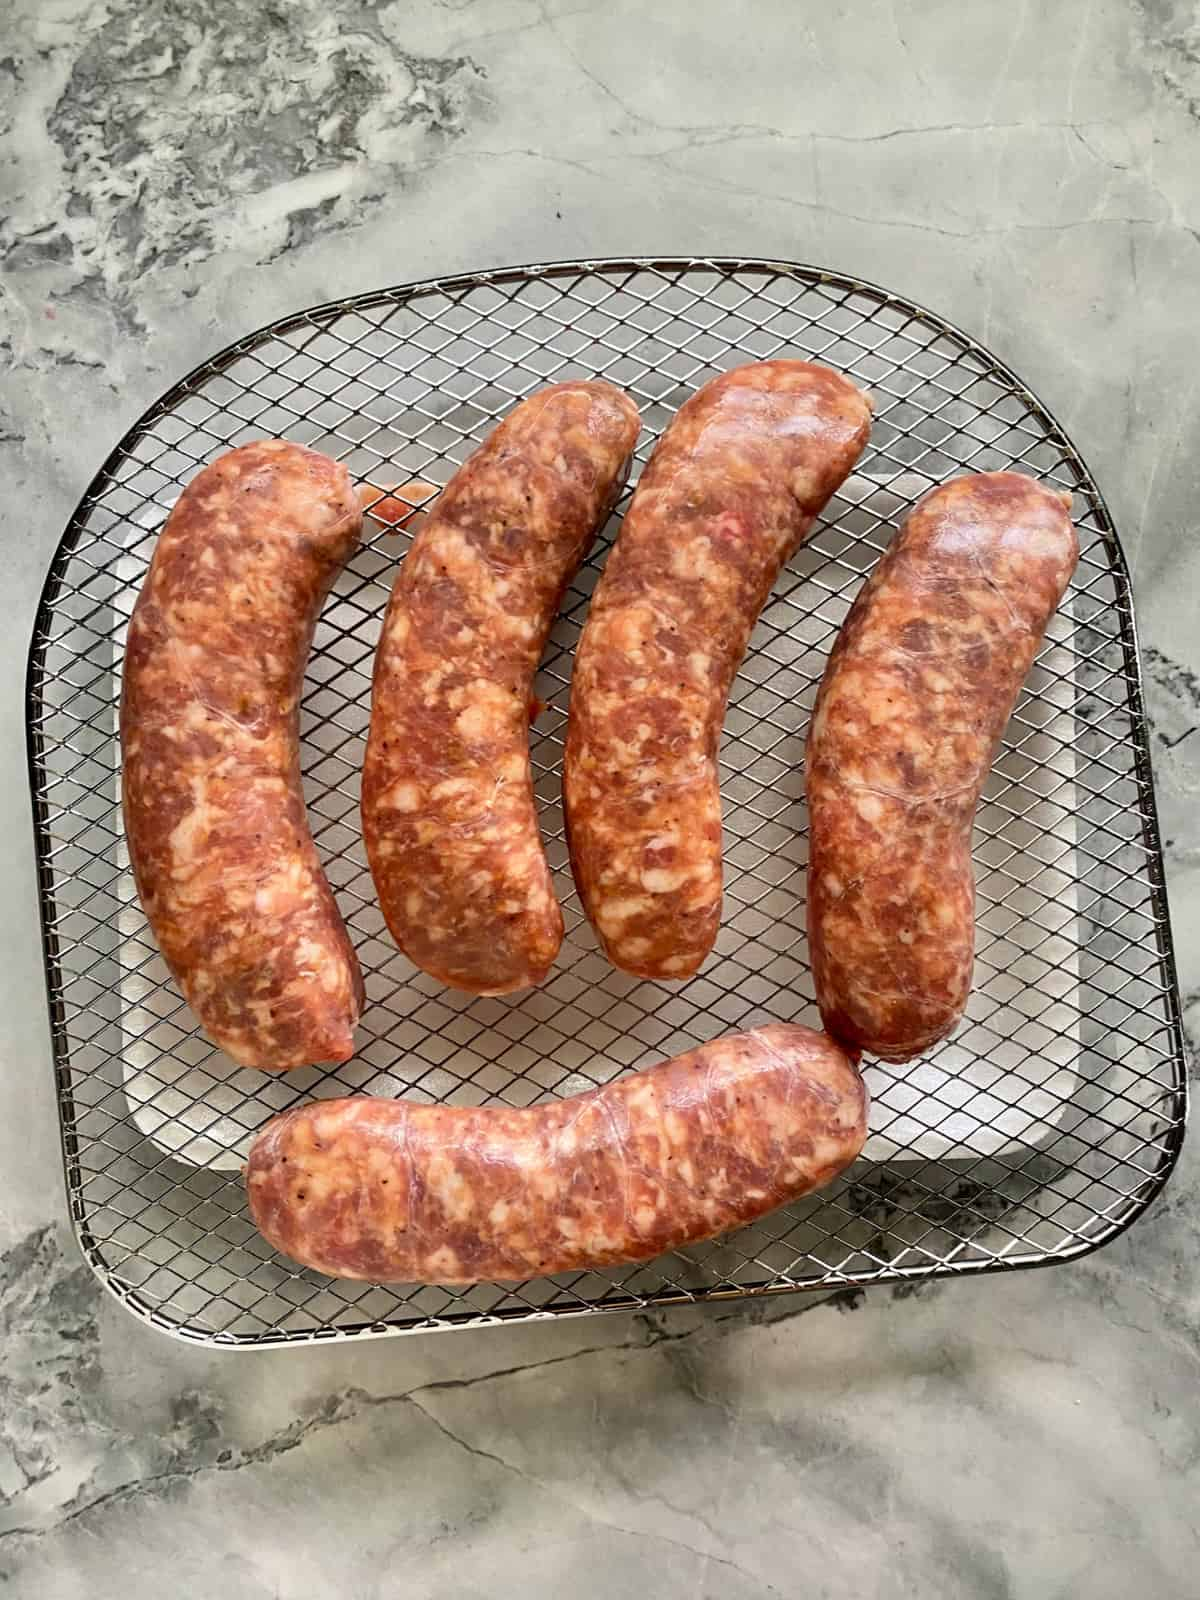 Top view of five raw sausage links on a wire rack.